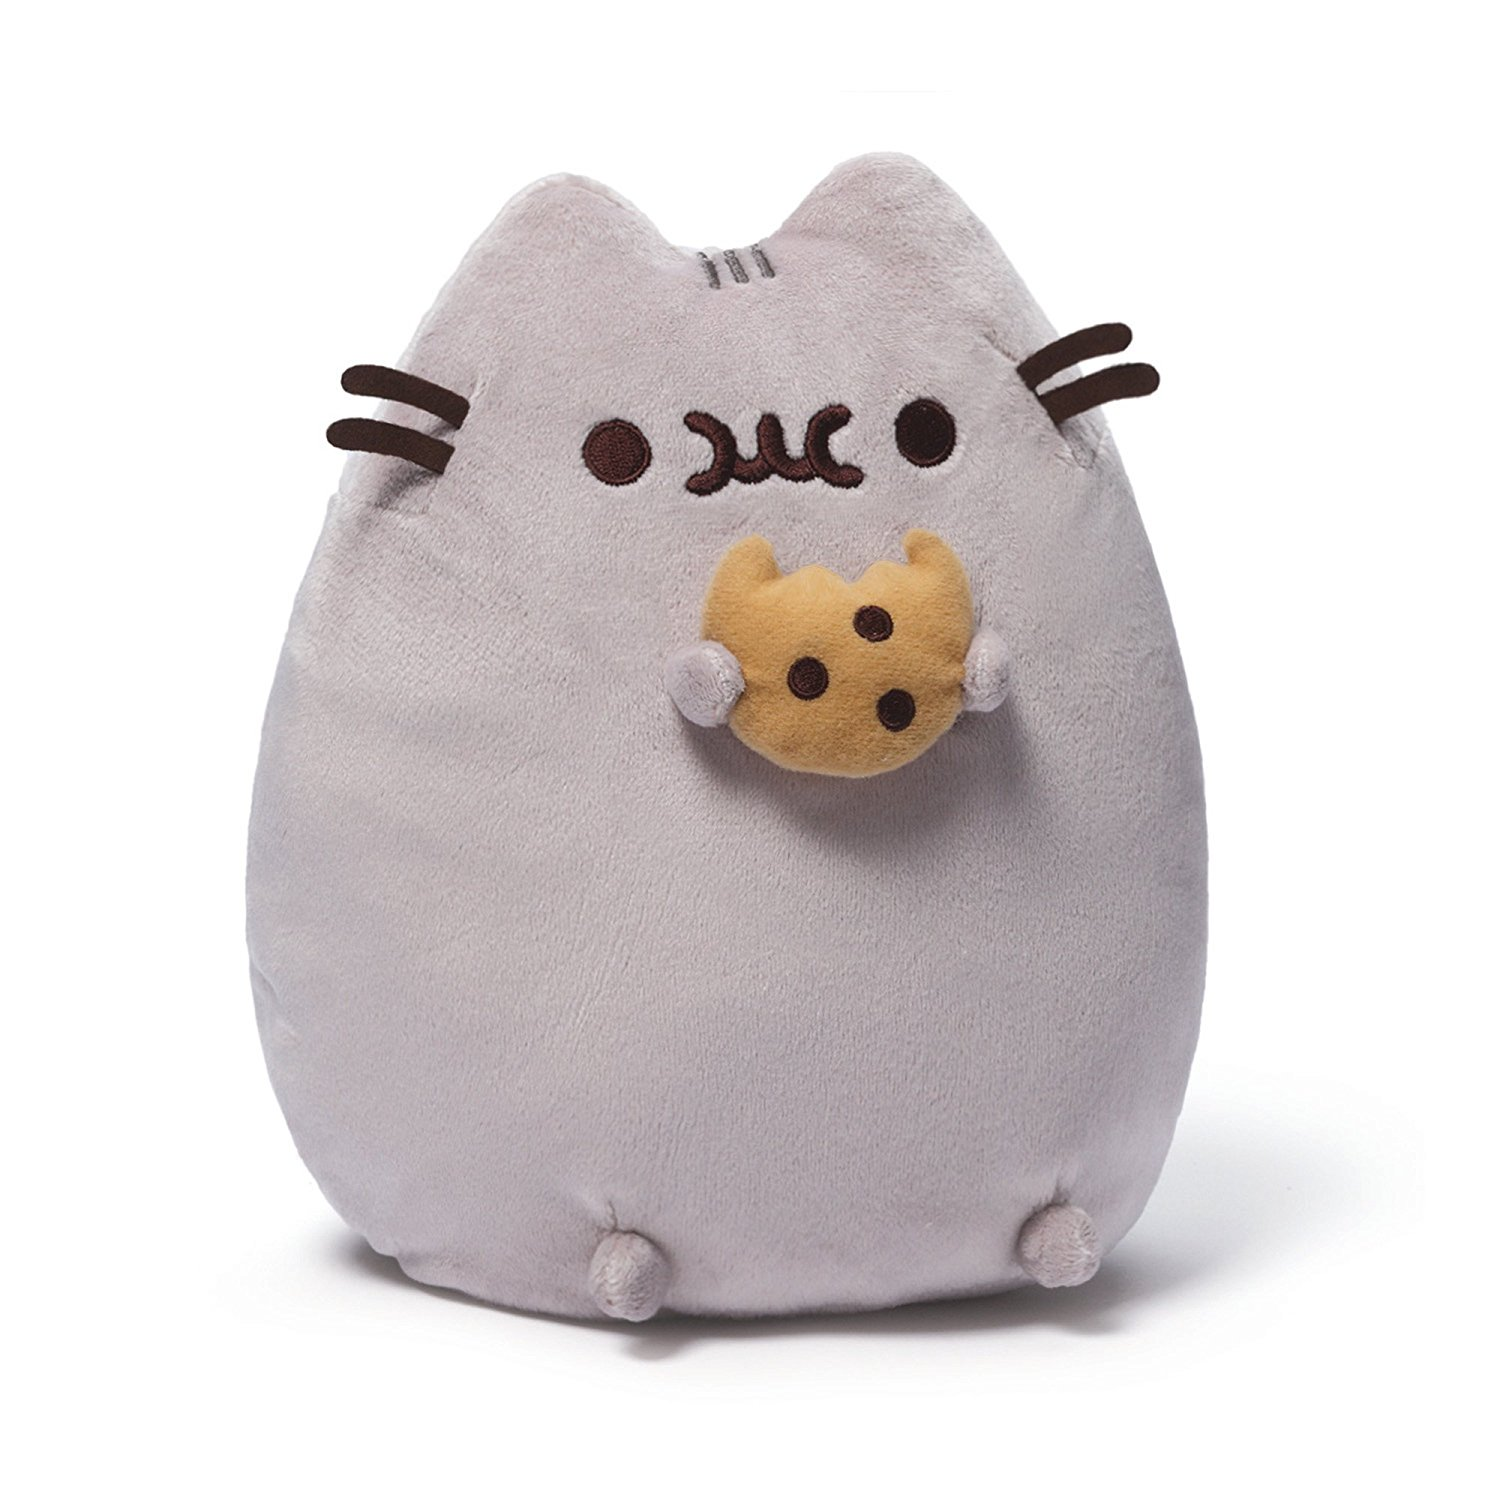 Cundeen Pusheen Plush with Cookie